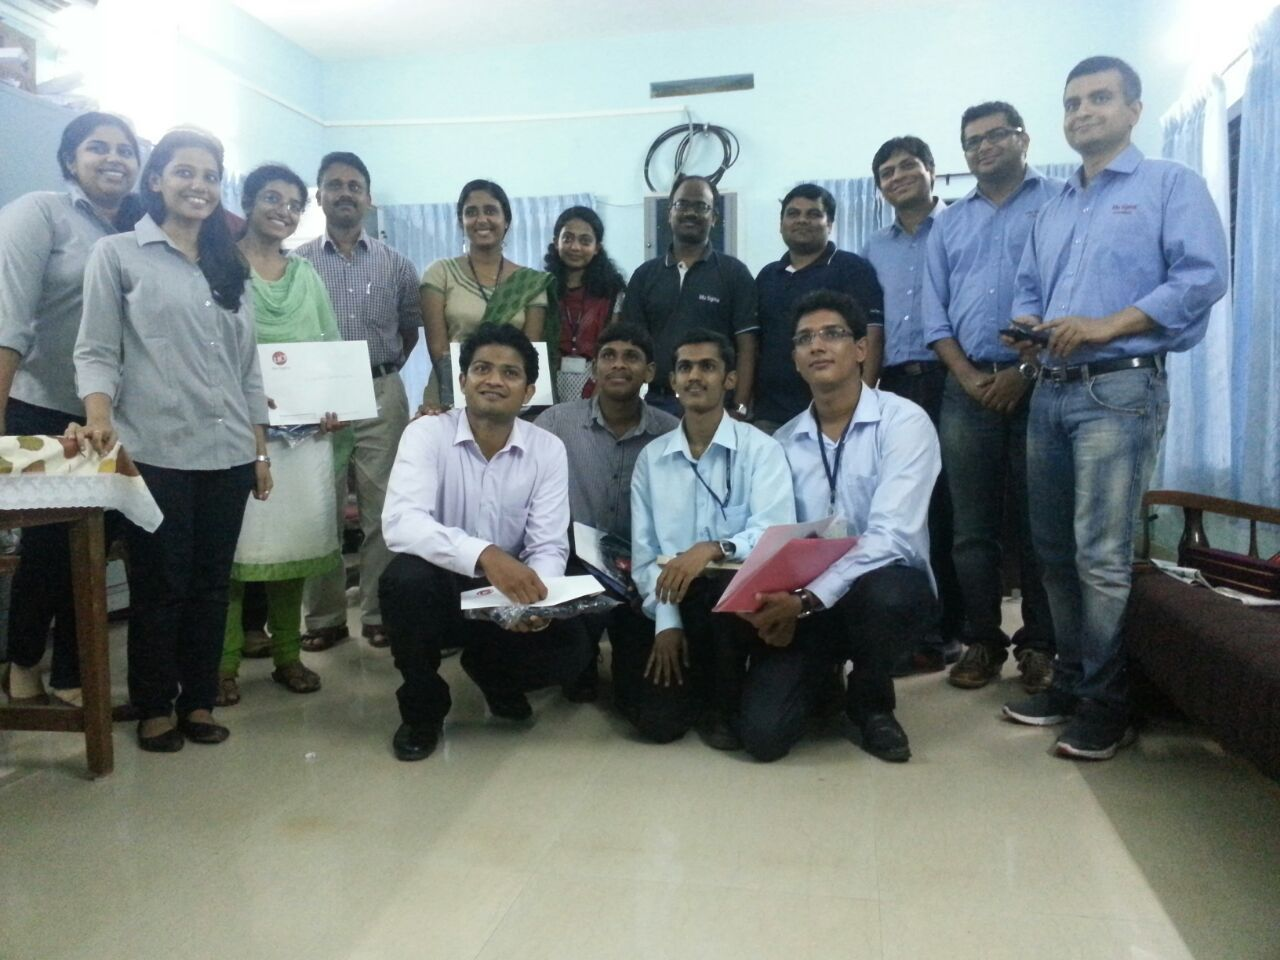 All Smiling And Cheerful Welcome New Hires From Government Engineering College Thrissur Gec Thrissur Engineering Colleges Engineering Government